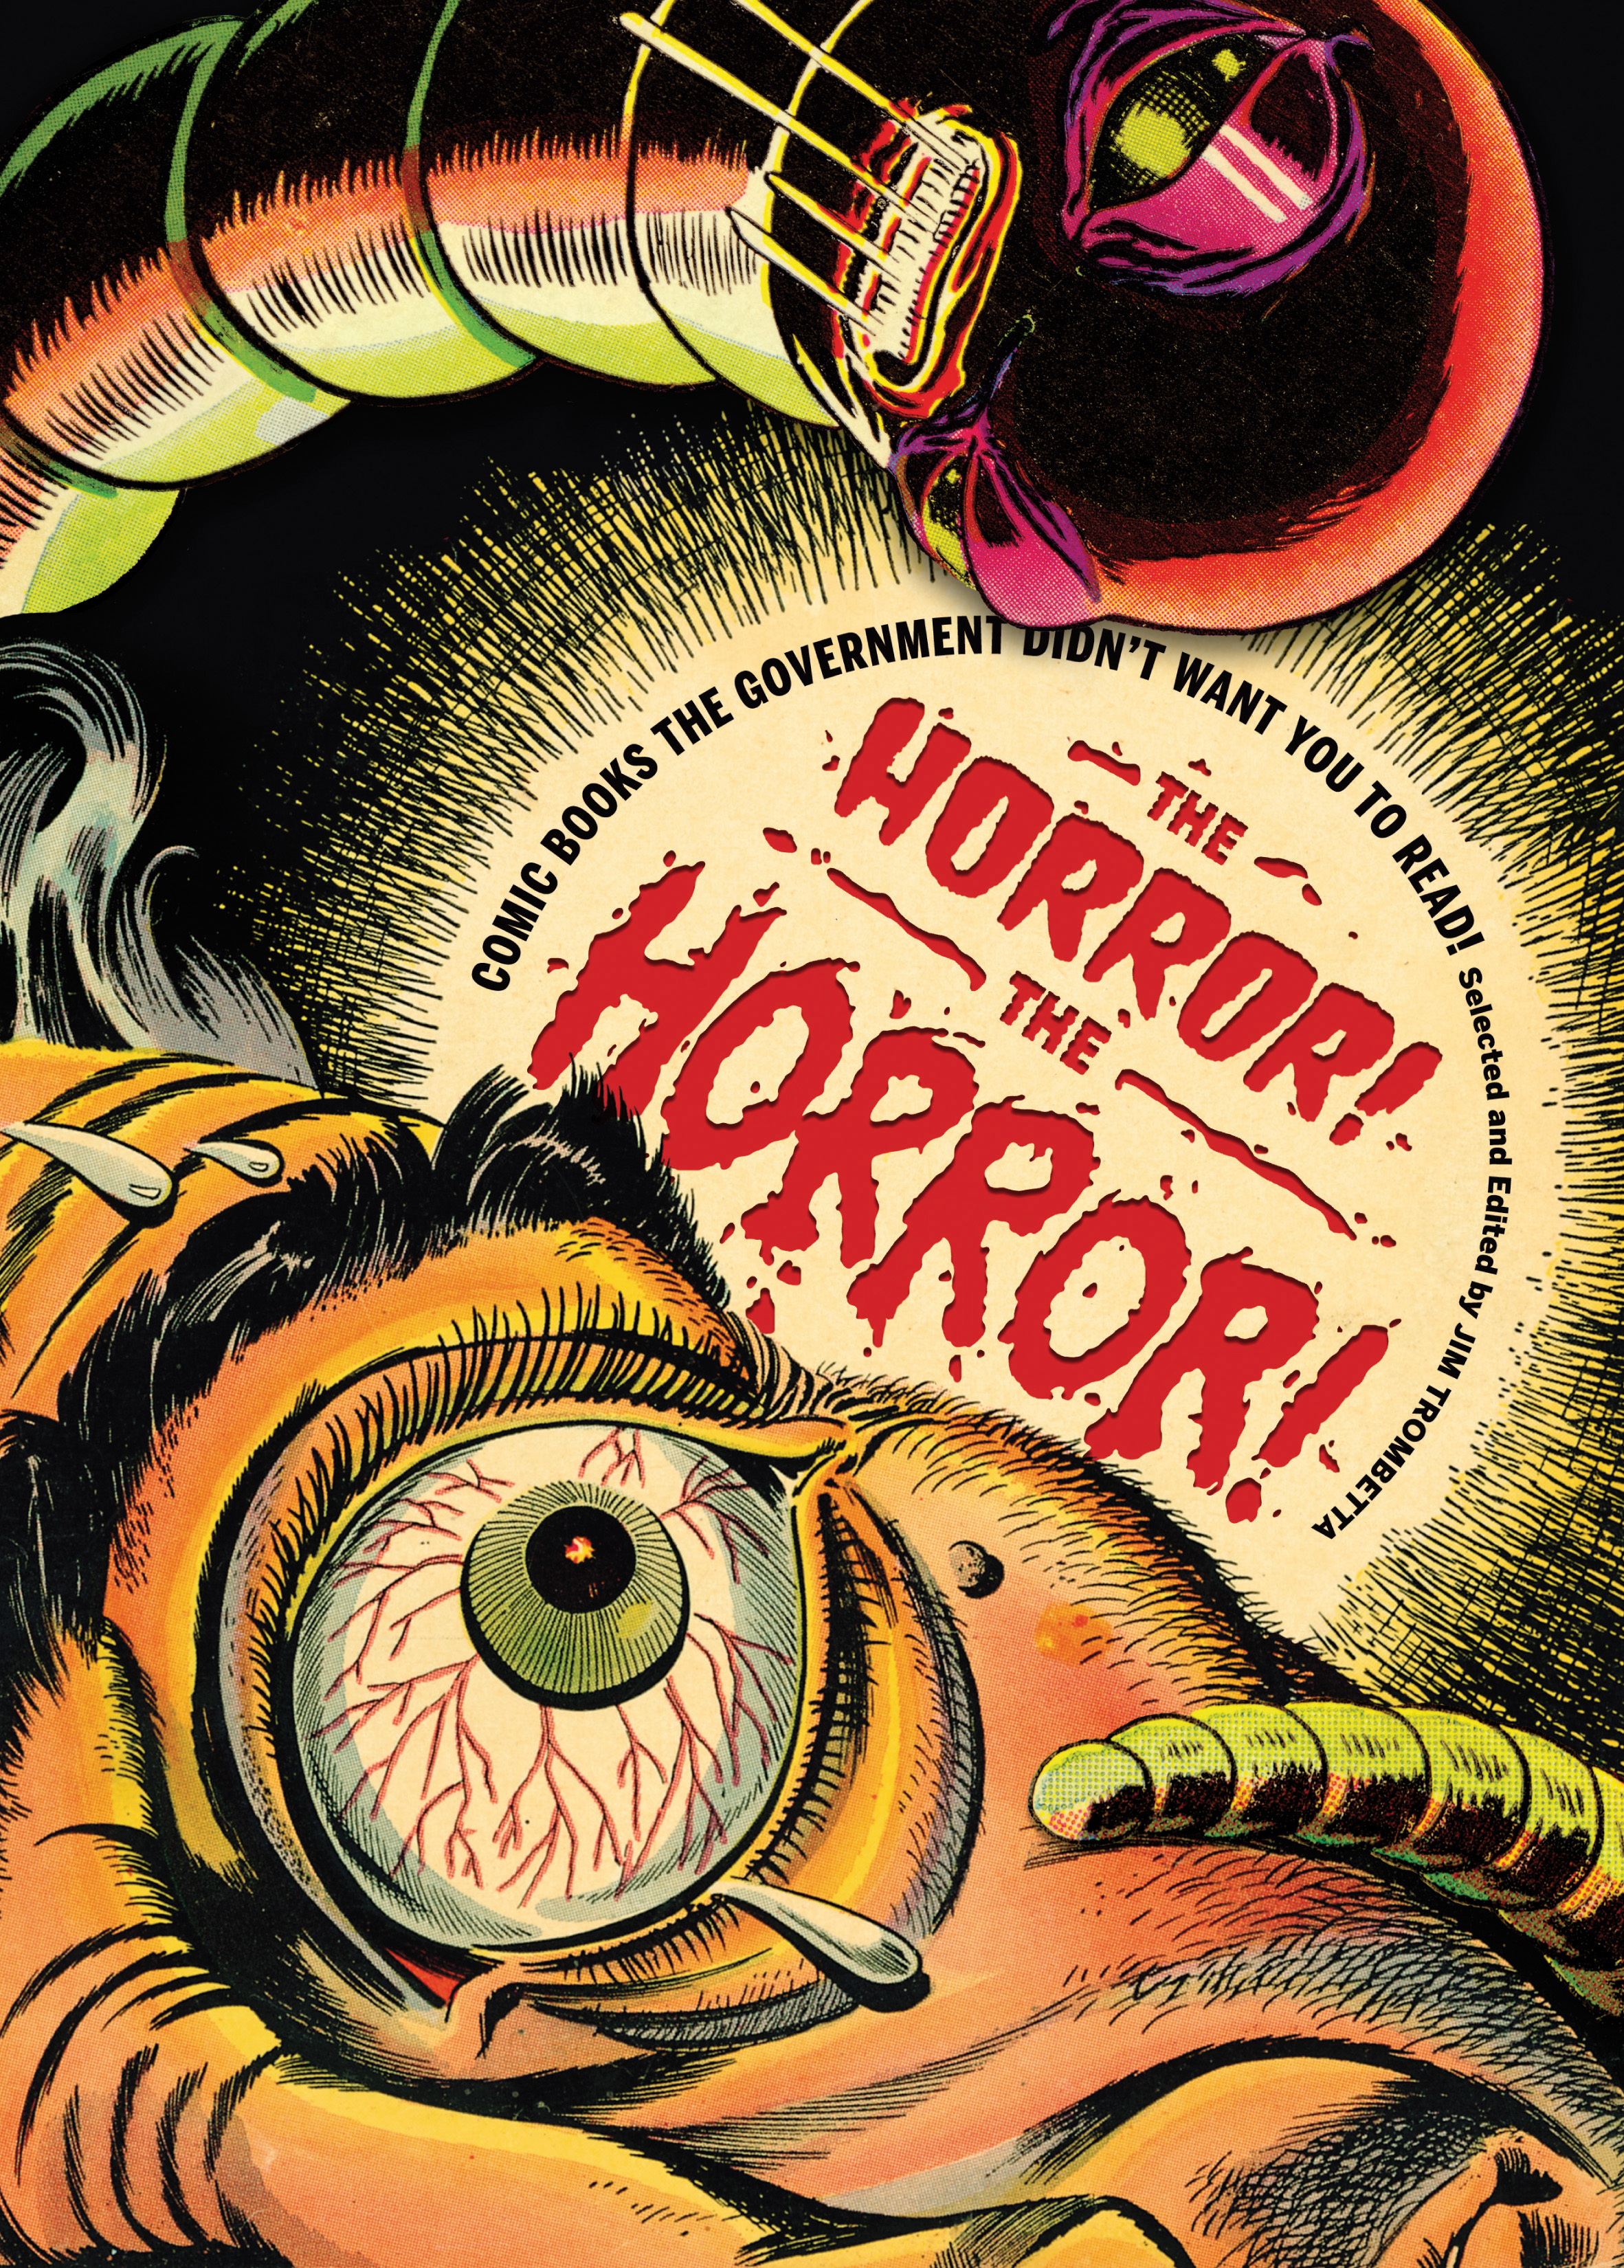 Adult, Underground, and Horror Comics Pack 6